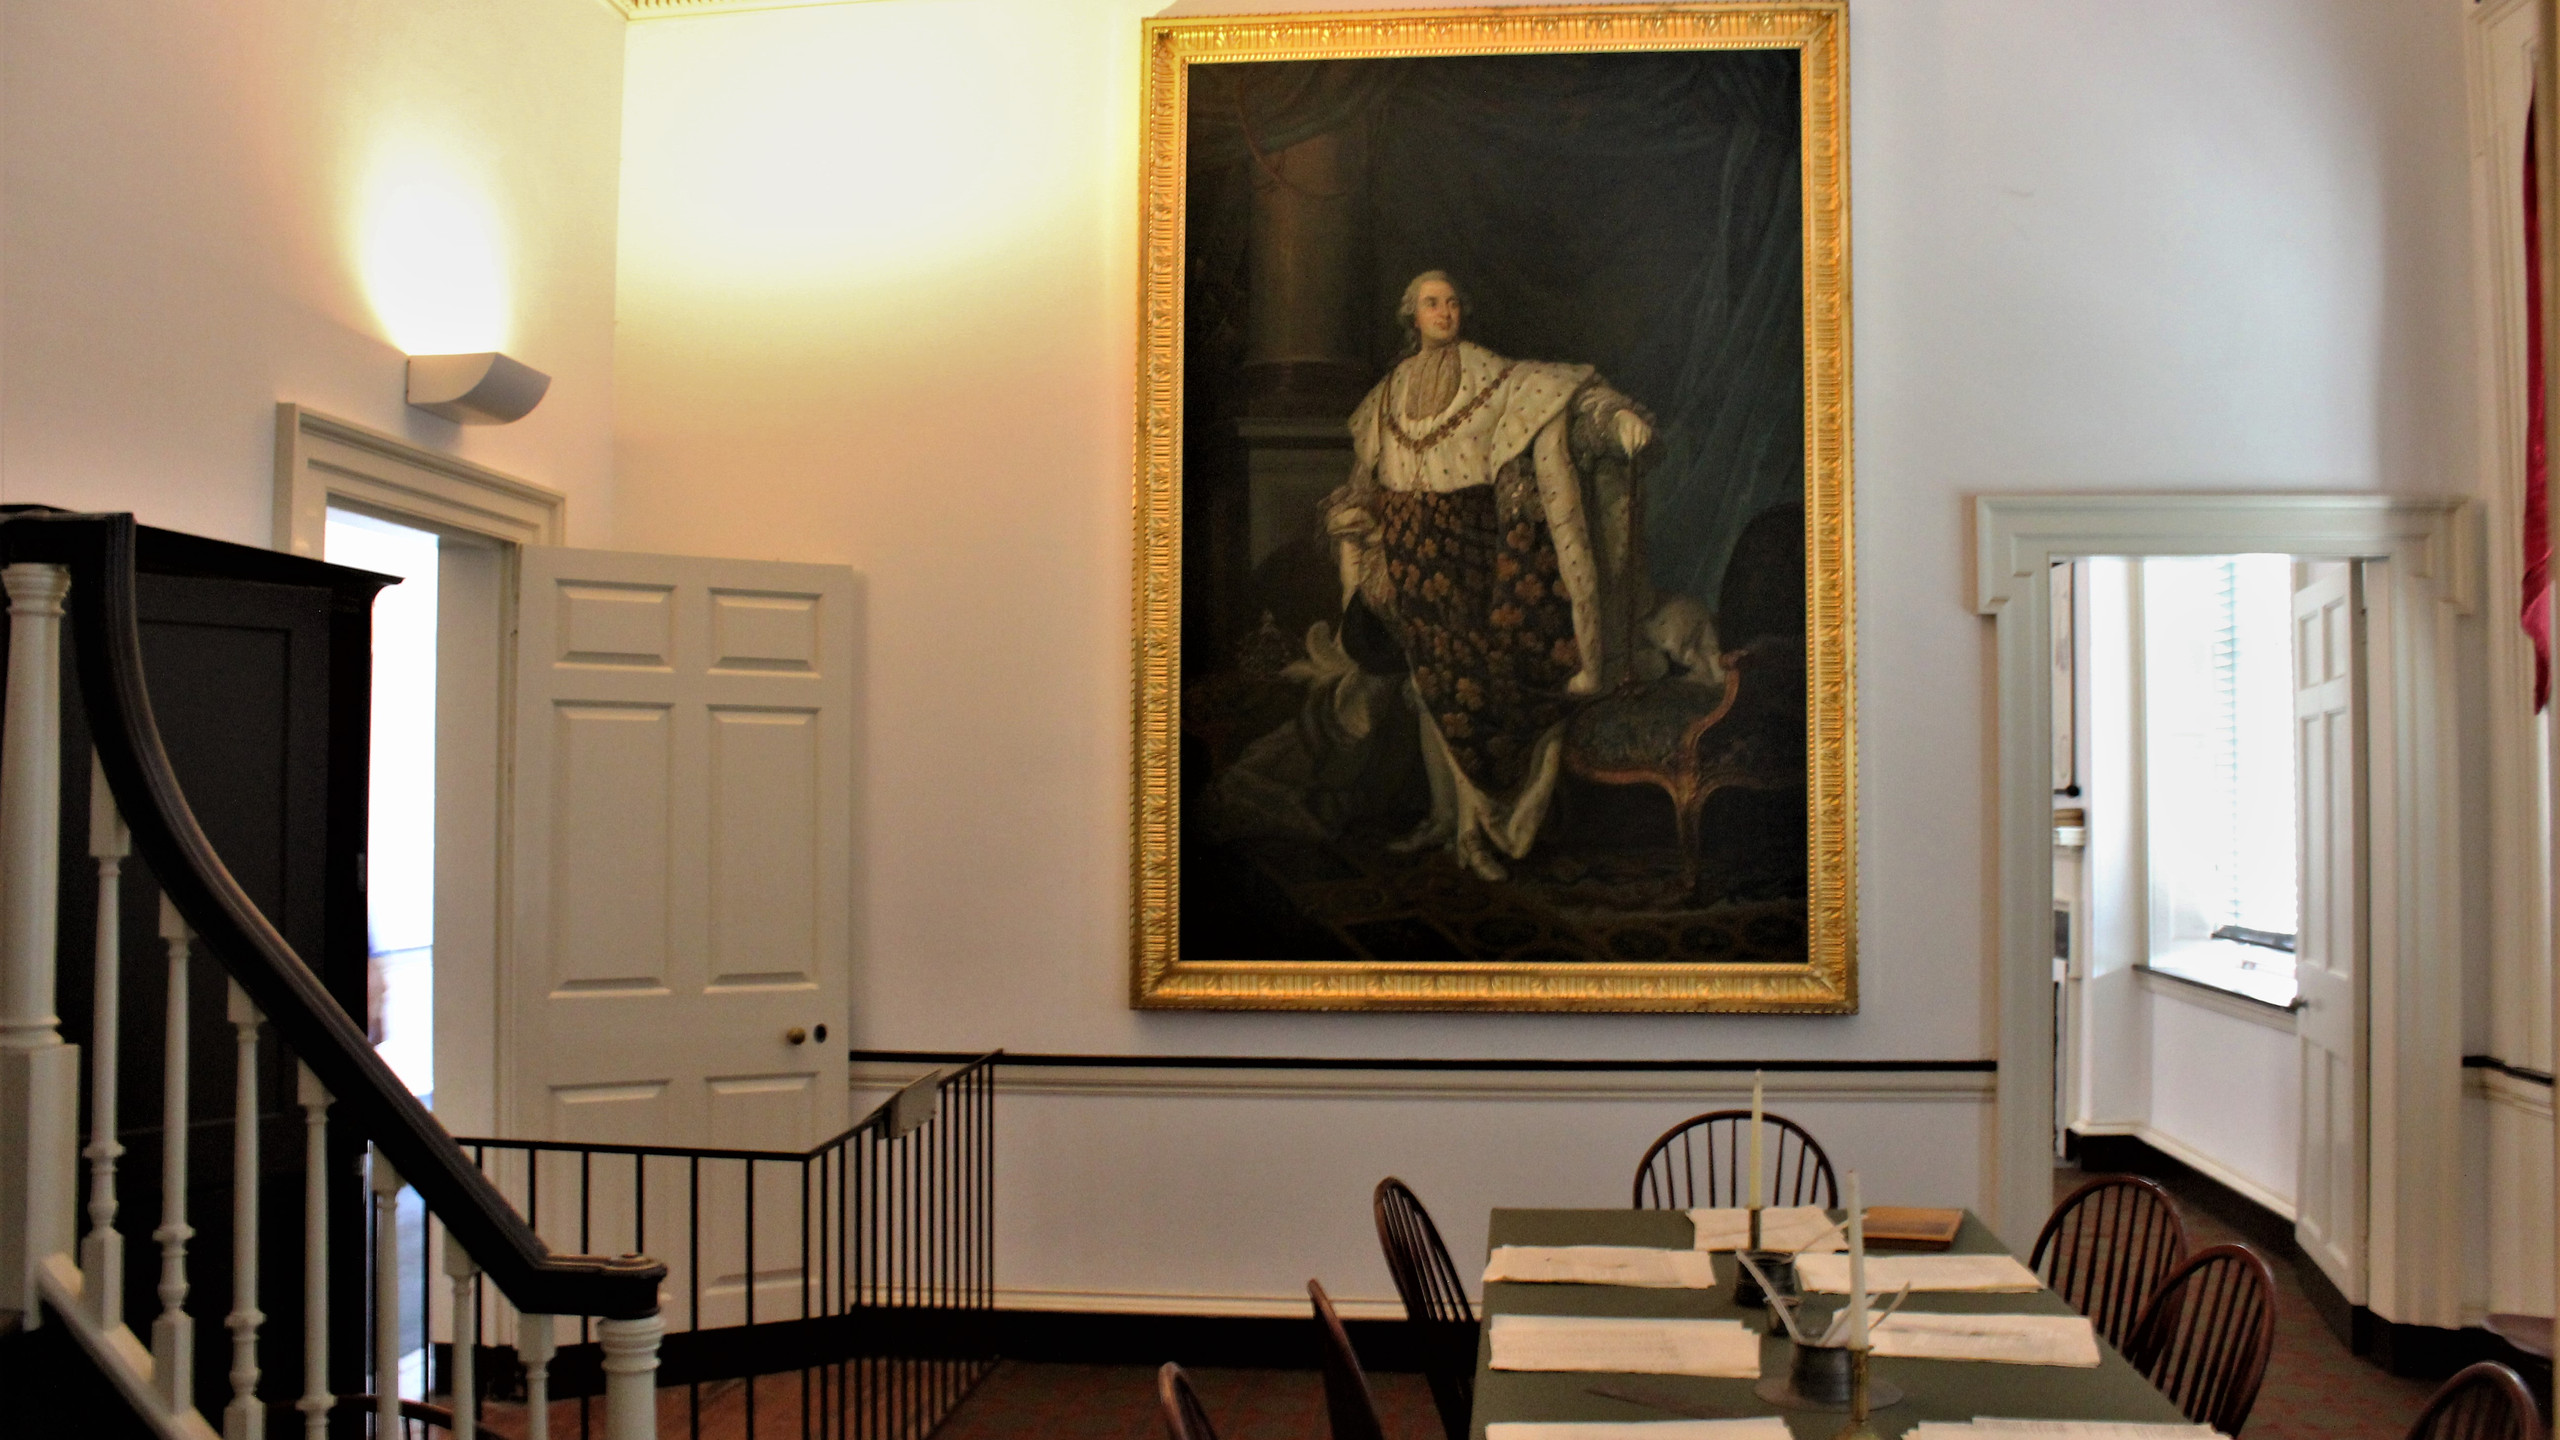 Meeting Room inside Congress Hall